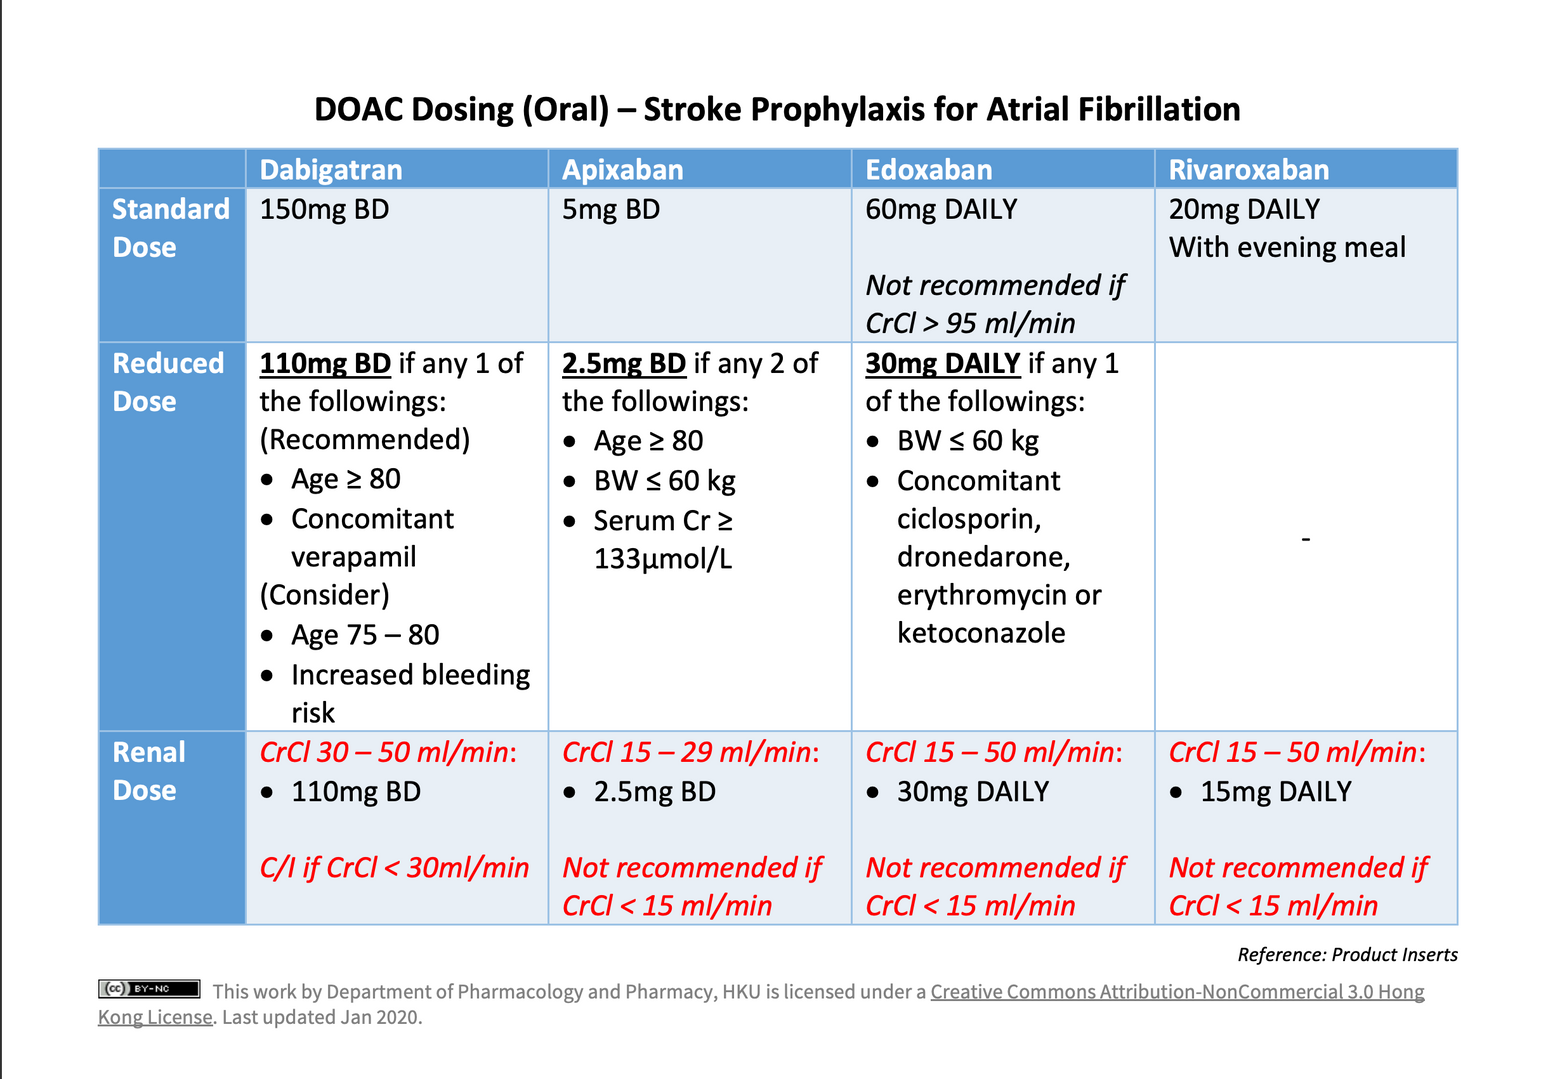 DOAC - Dosing in Stroke Prophylaxis for AF